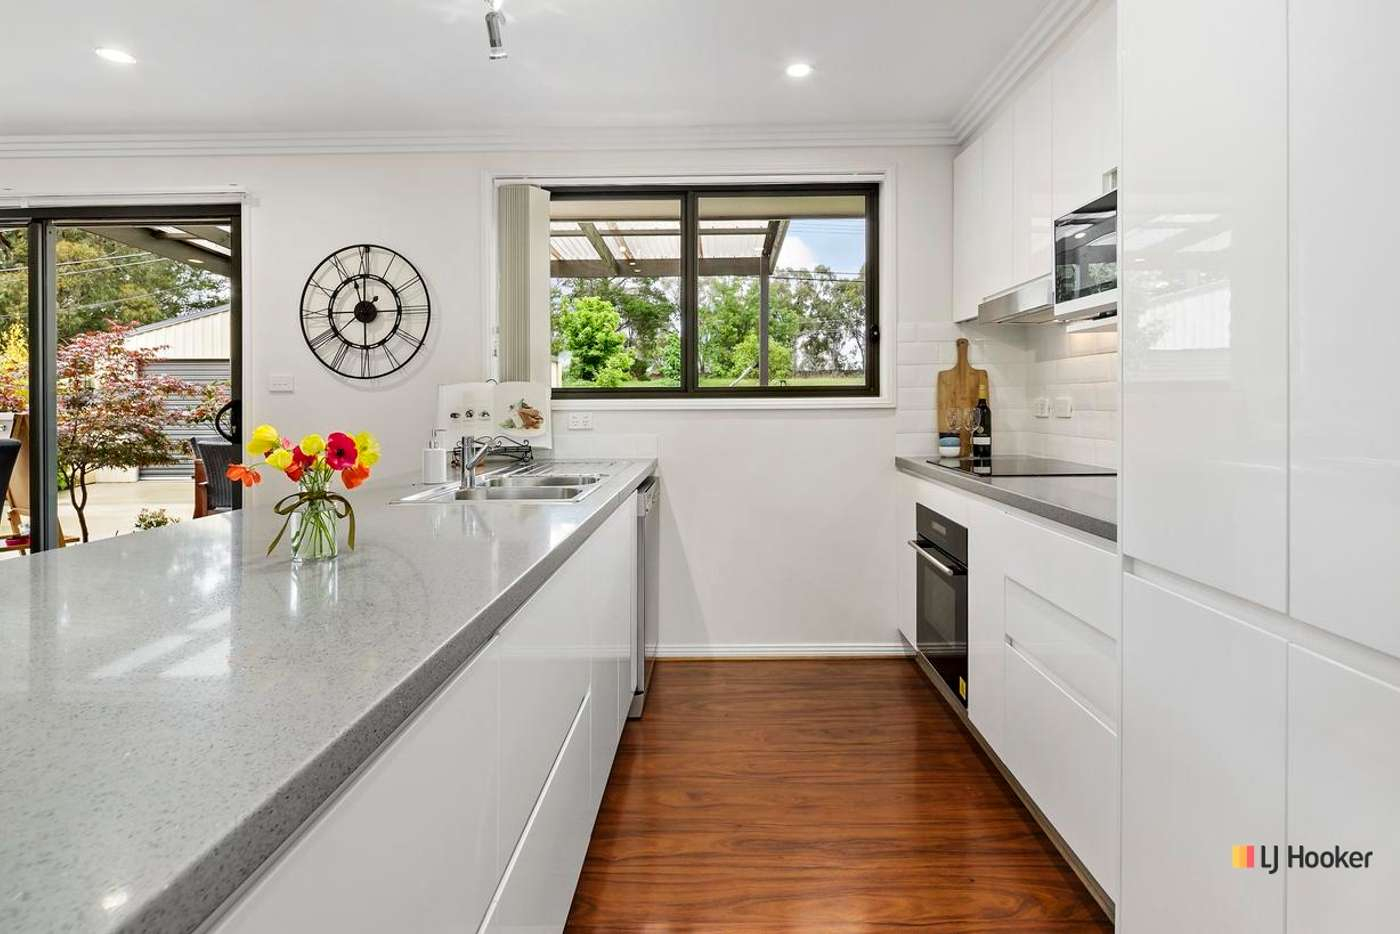 Fifth view of Homely house listing, 61 Shannon Circuit, Kaleen ACT 2617